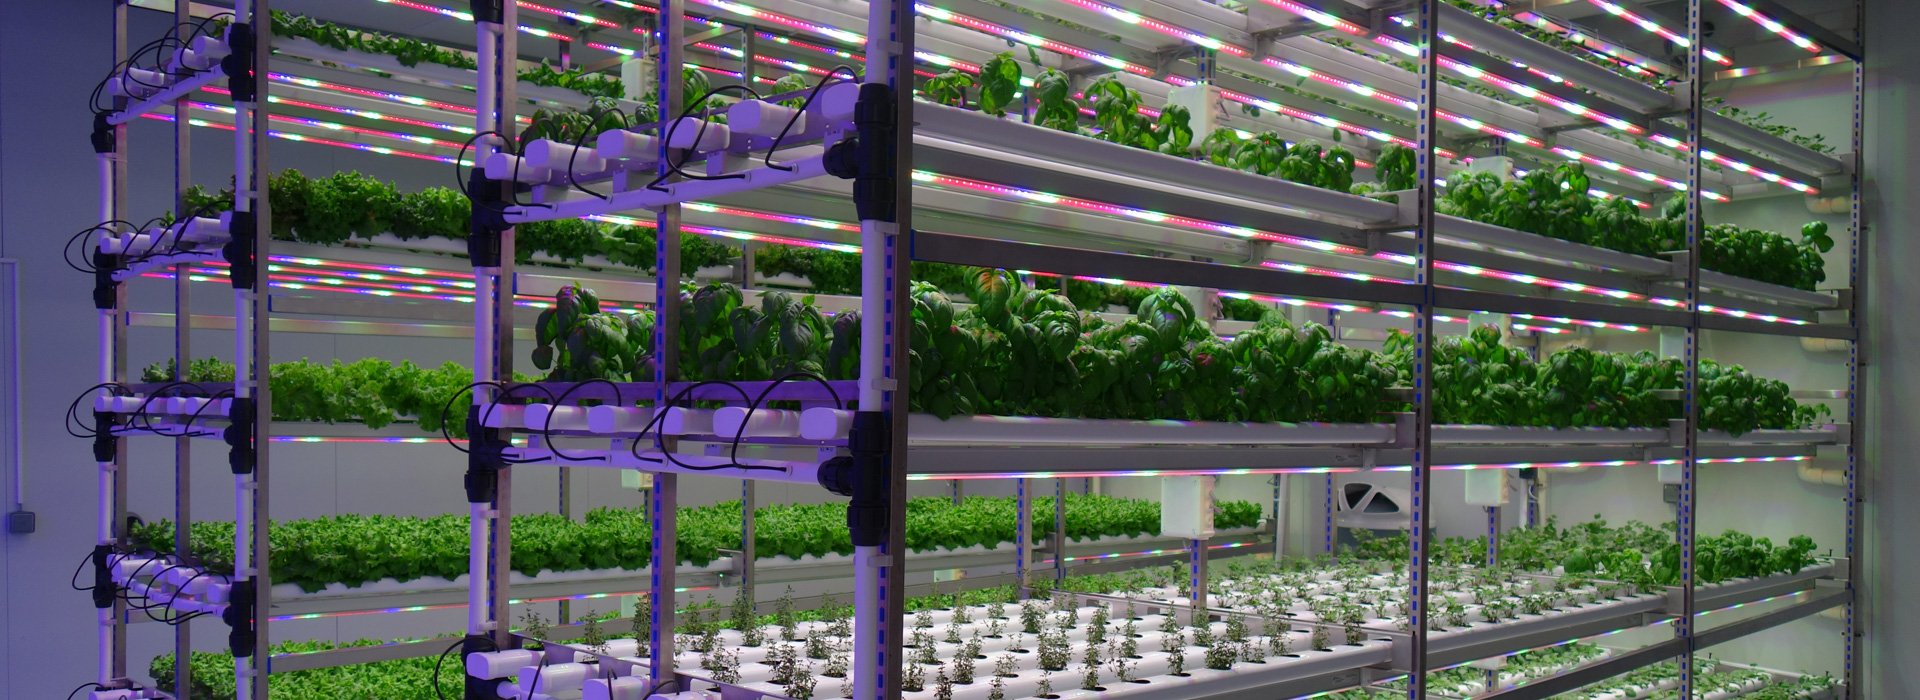 vertical farming plant factory market shares strategies and